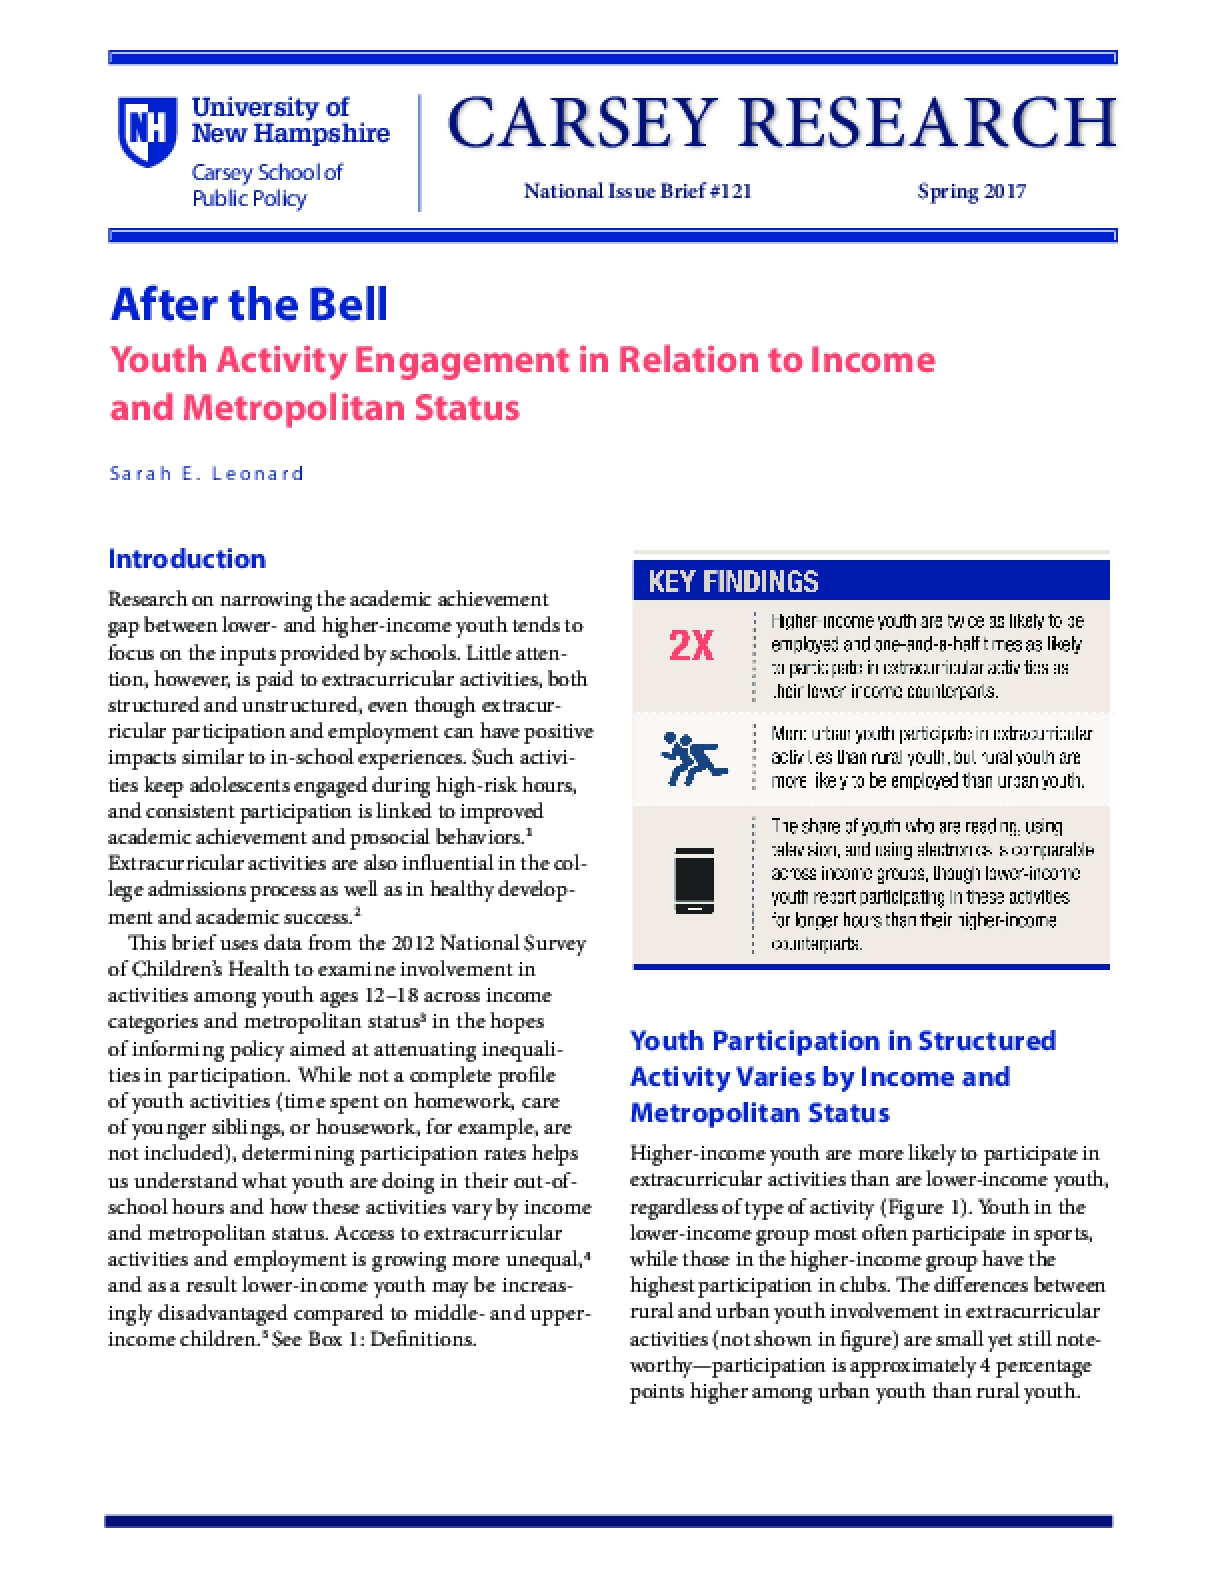 After the Bell: Youth Activity Engagement in Relation to Income and Metropolitan Status